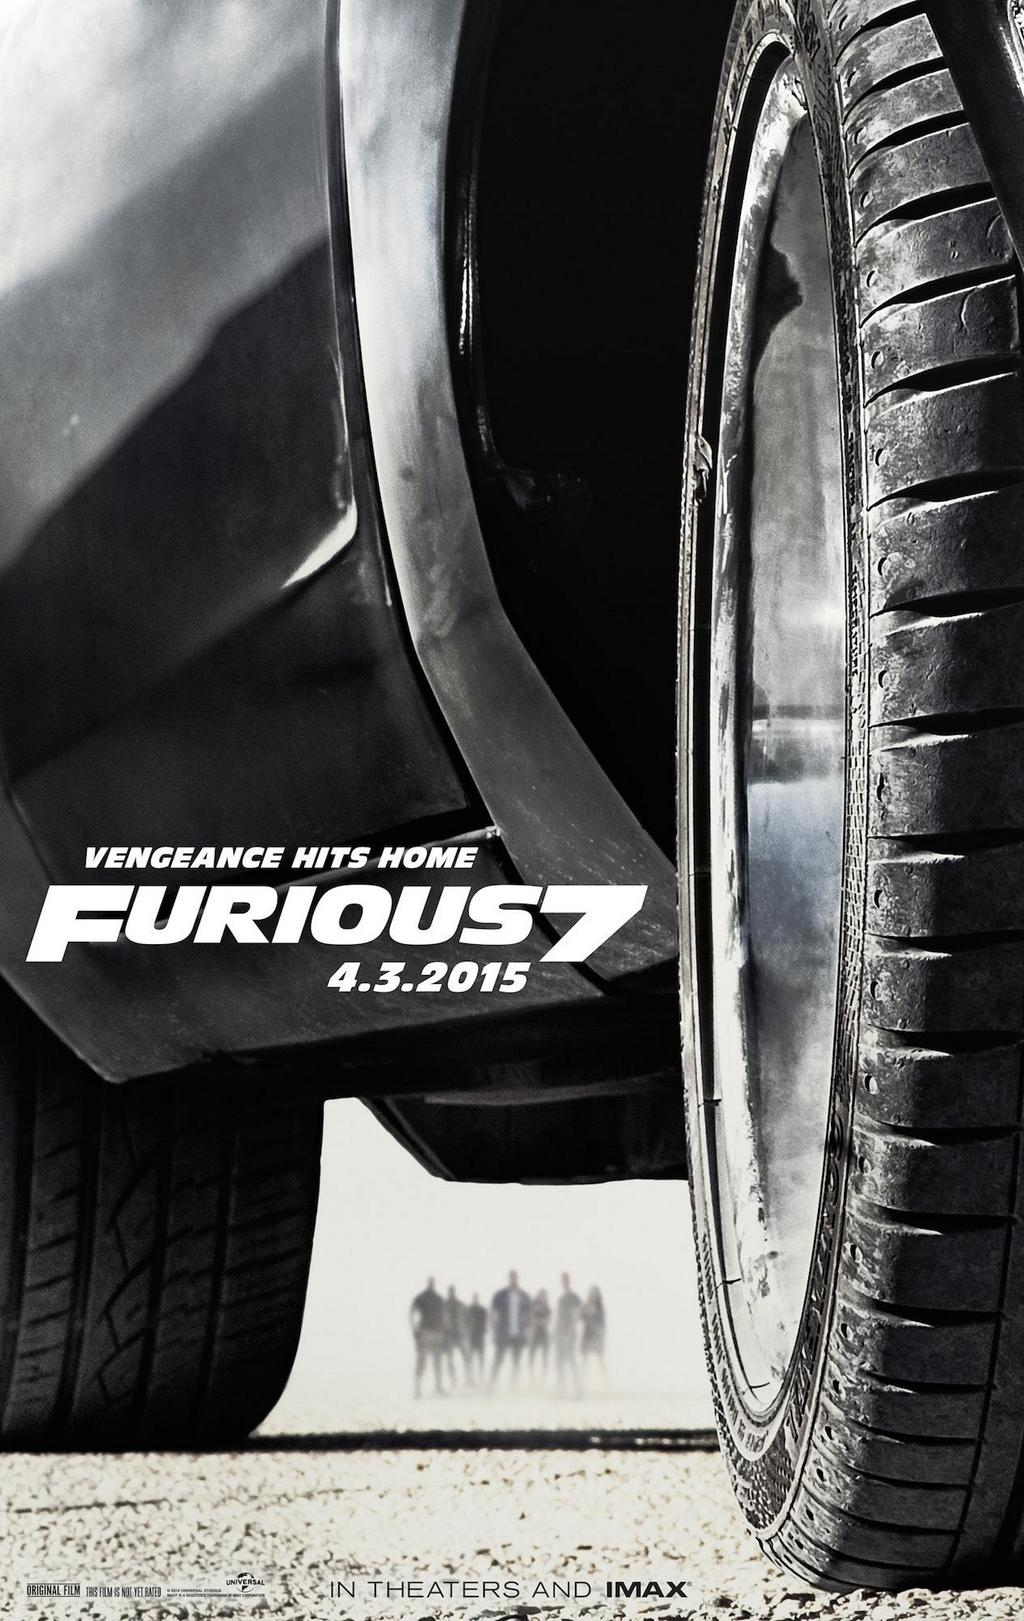 'Furious 7' pays homage to Paul Walkers legacy in the franchise and wraps up his character's story. (Photo provided by collider.com)